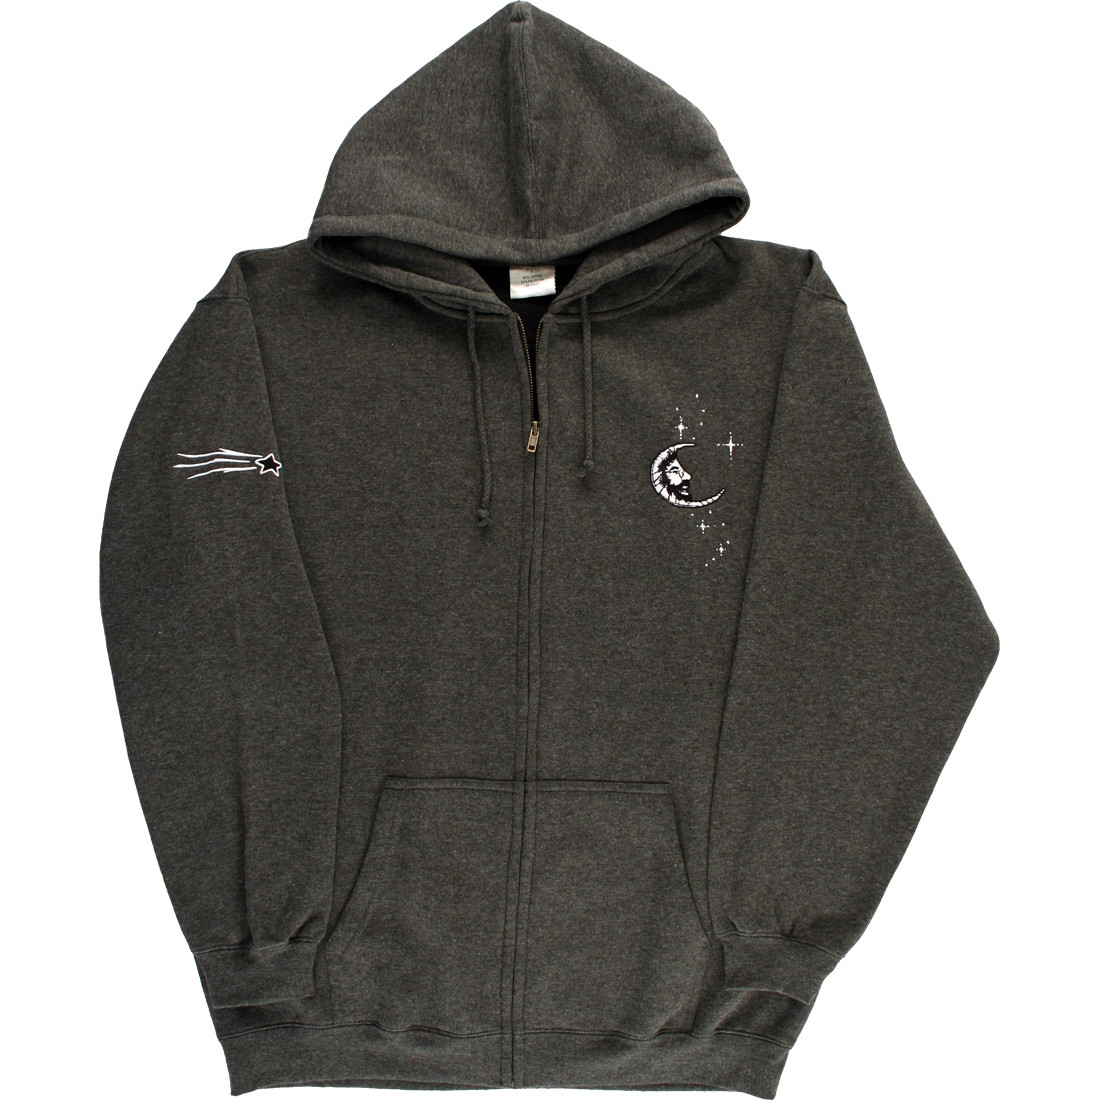 Jerry Moon Zipper Grey Hoodie